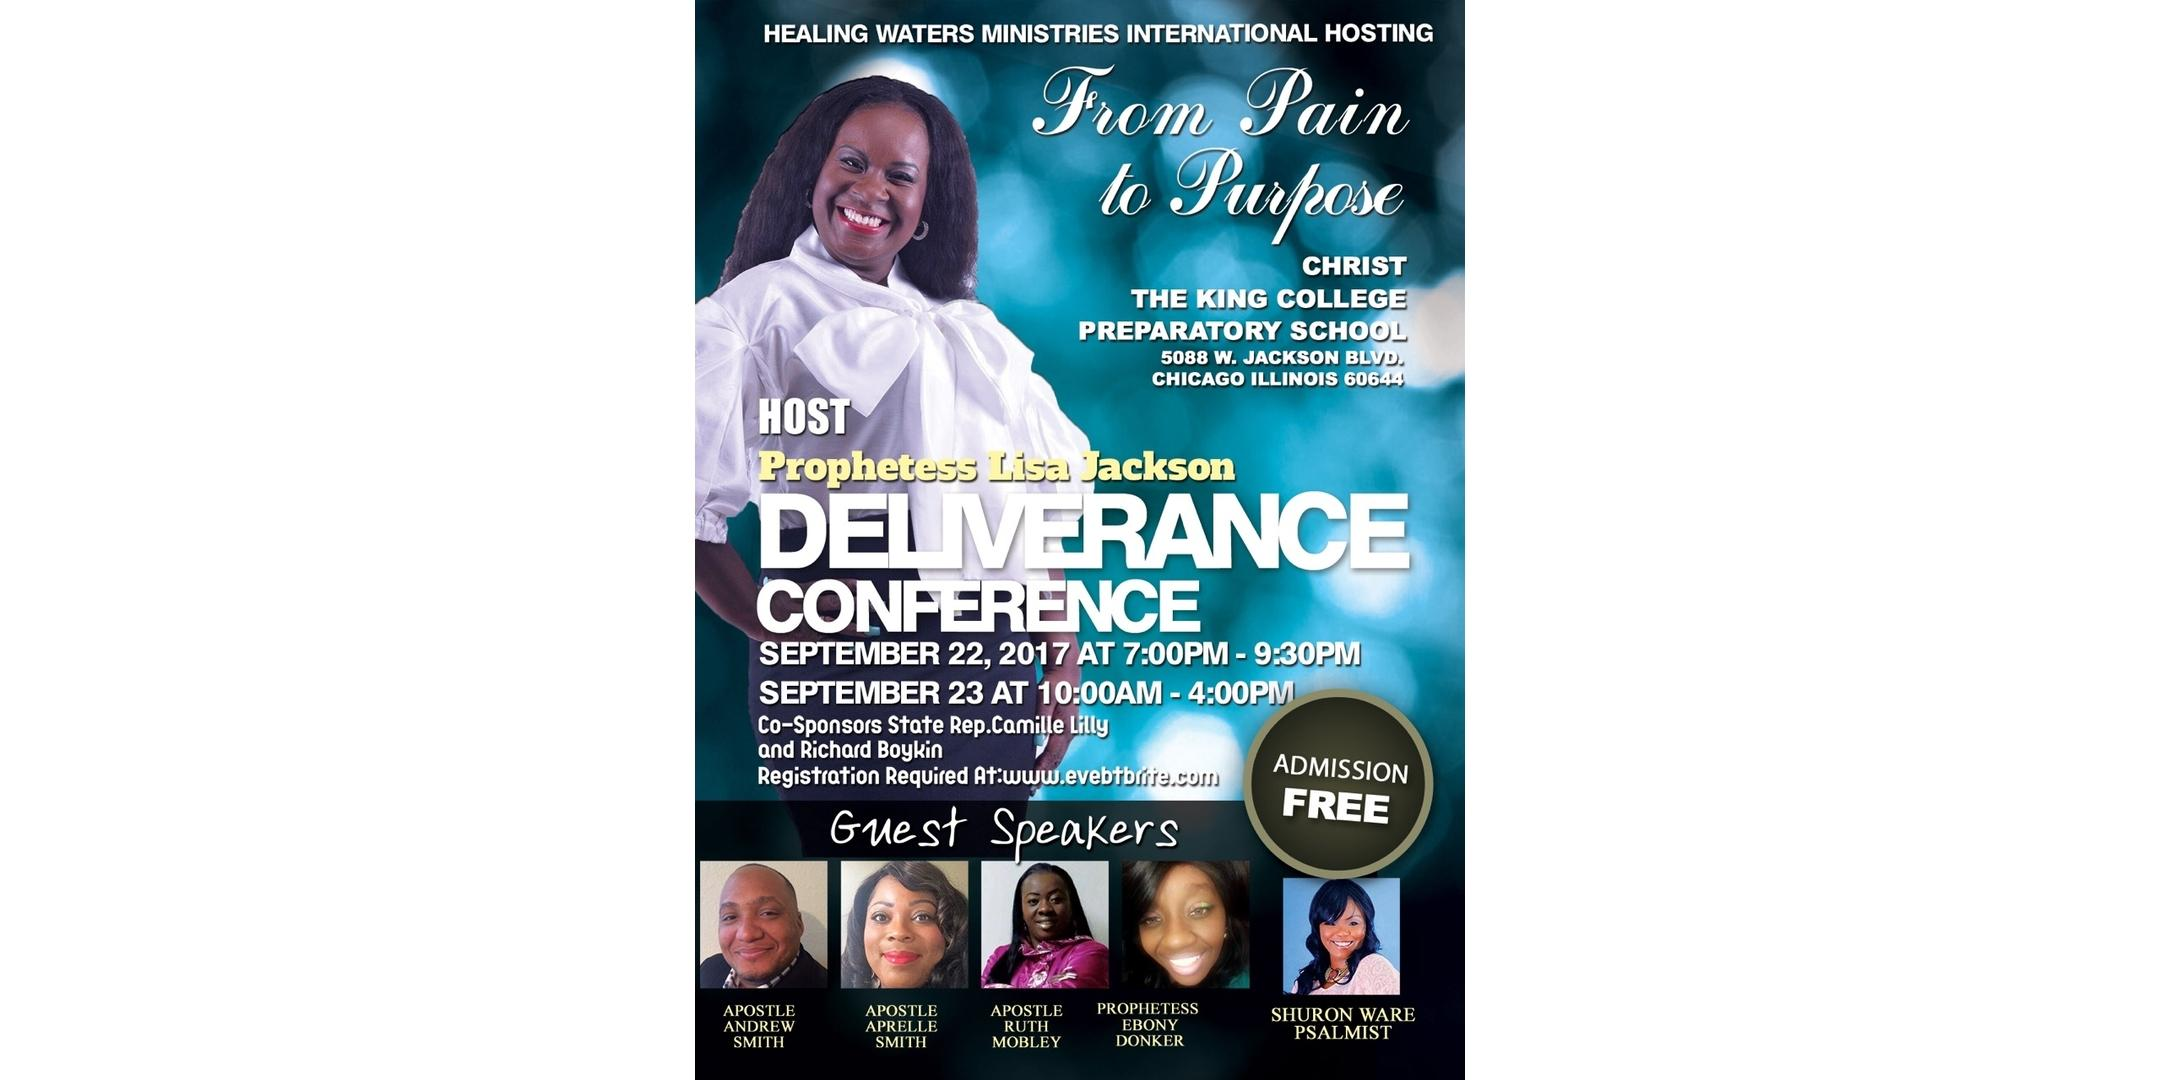 From Pain to Purpose Deliverance Conference